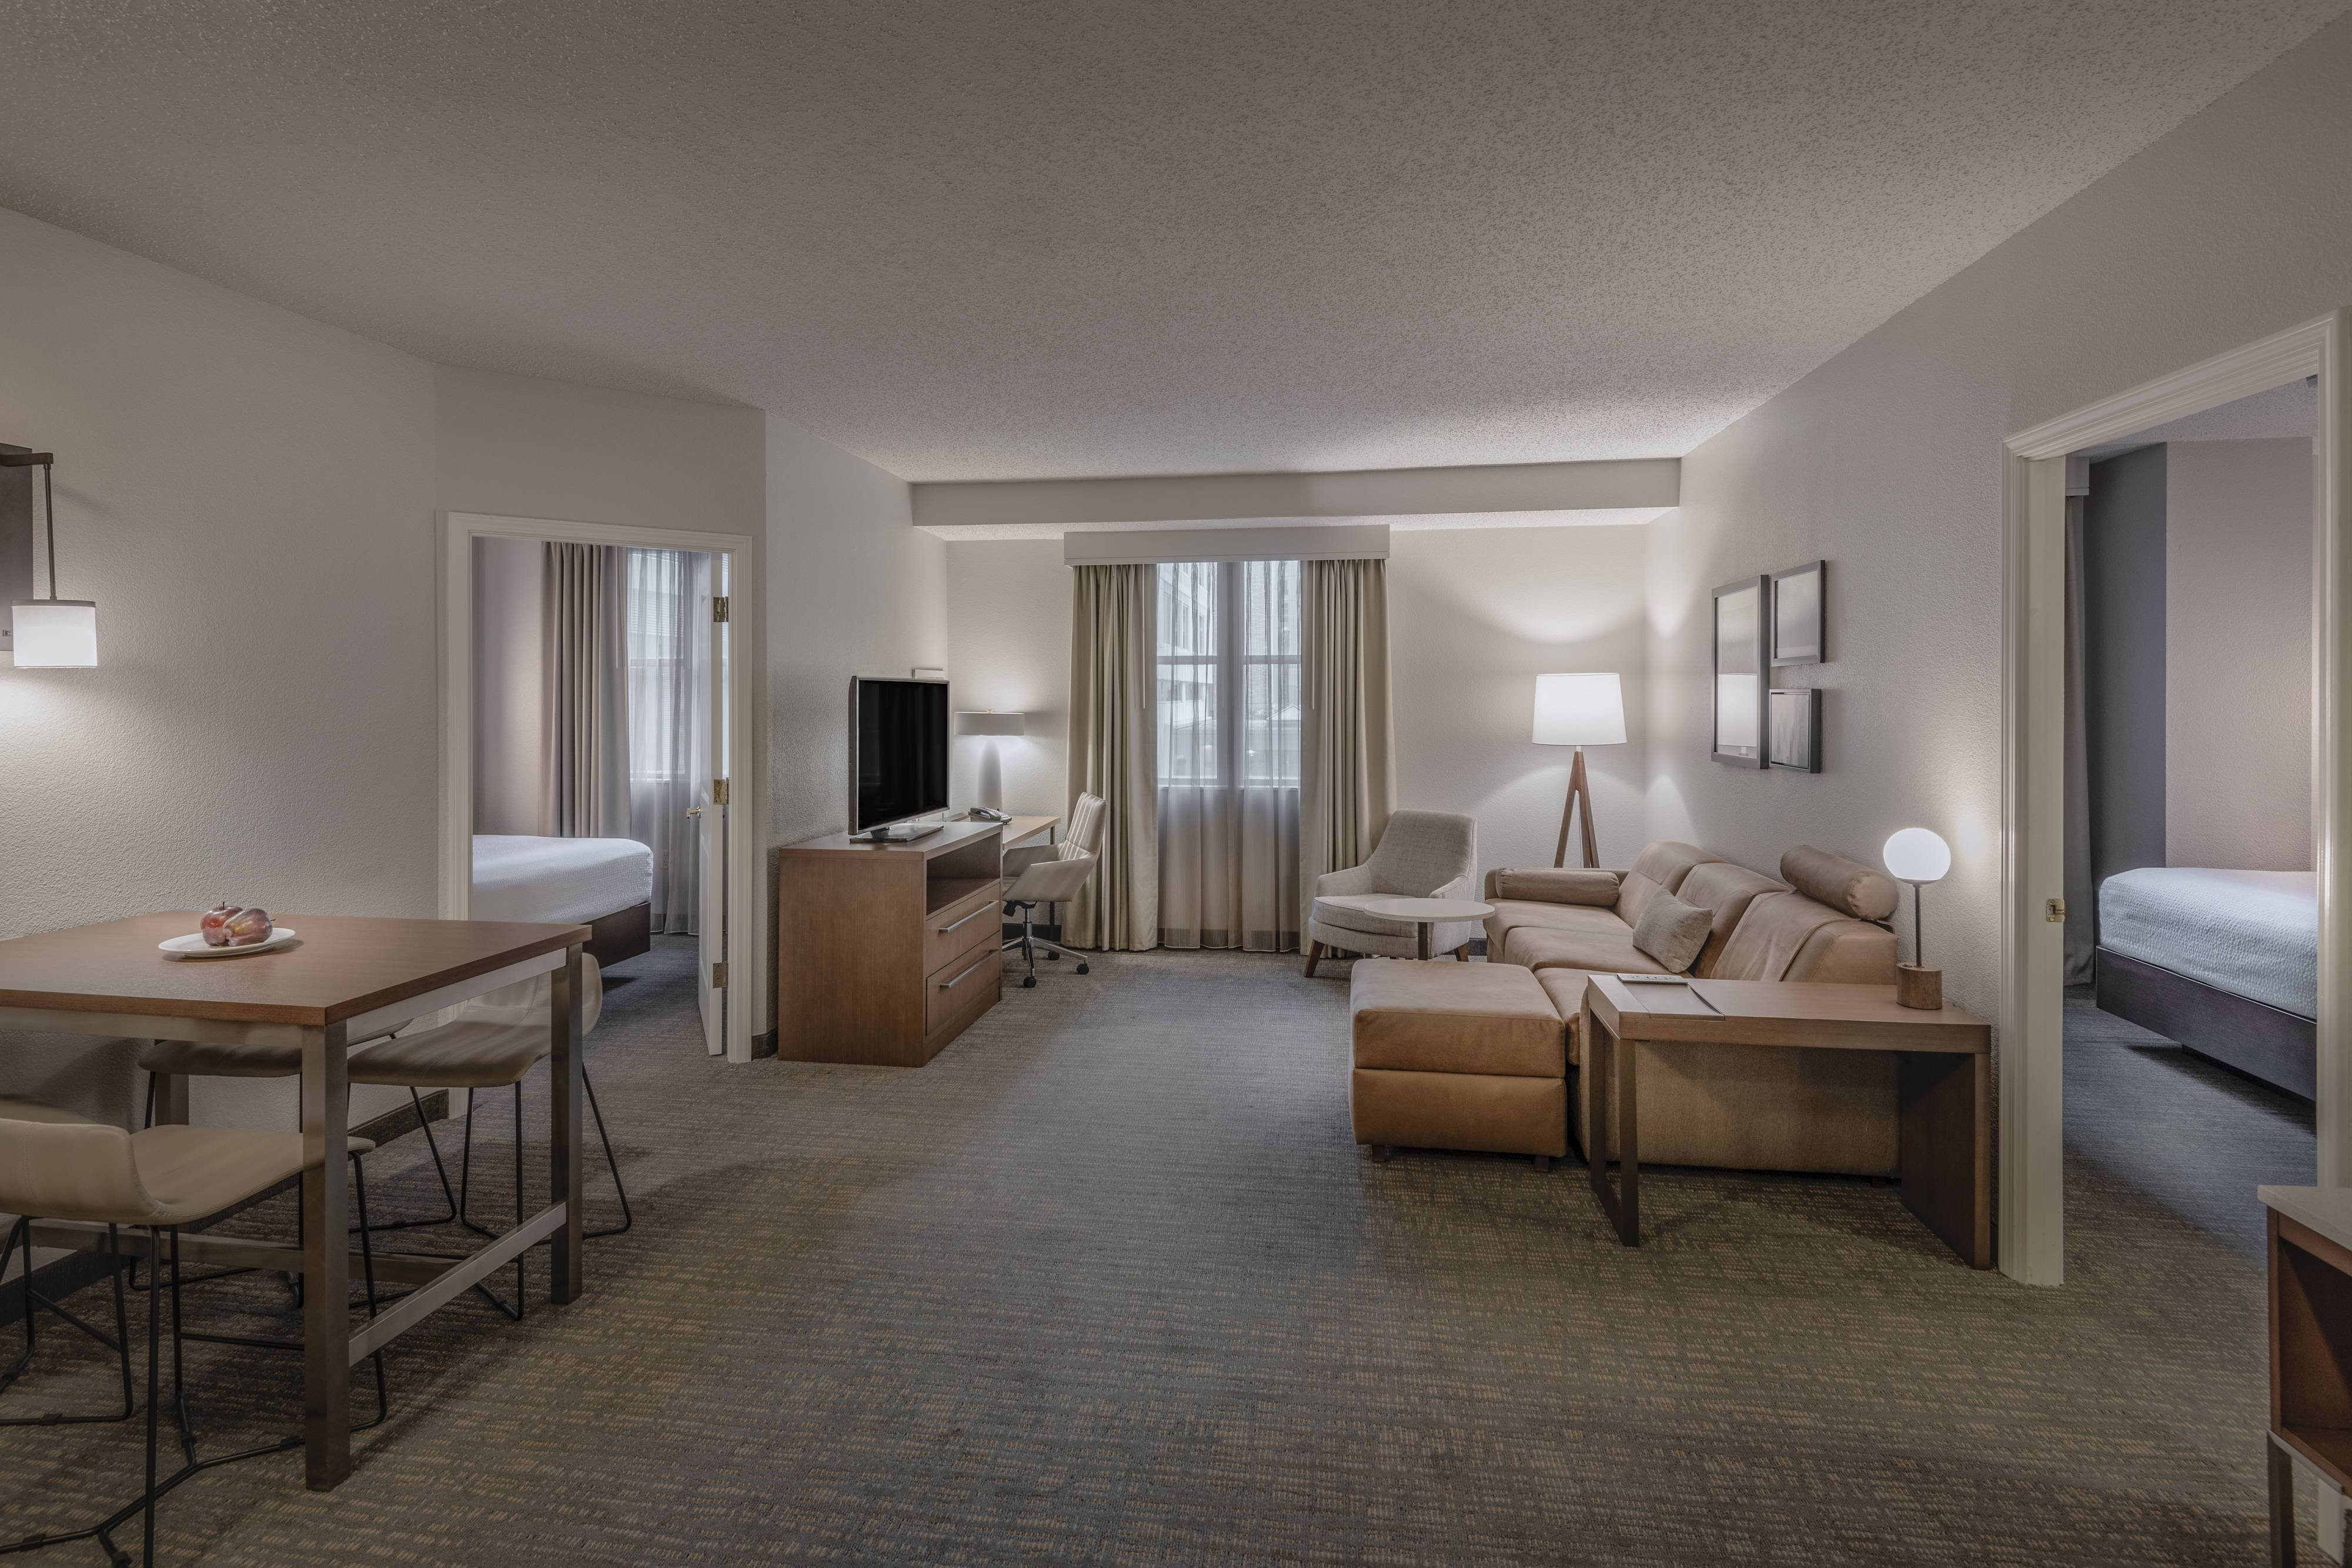 Best Hotel Rooms Amenities Residence Inn Washington Dc Capitol With Pictures